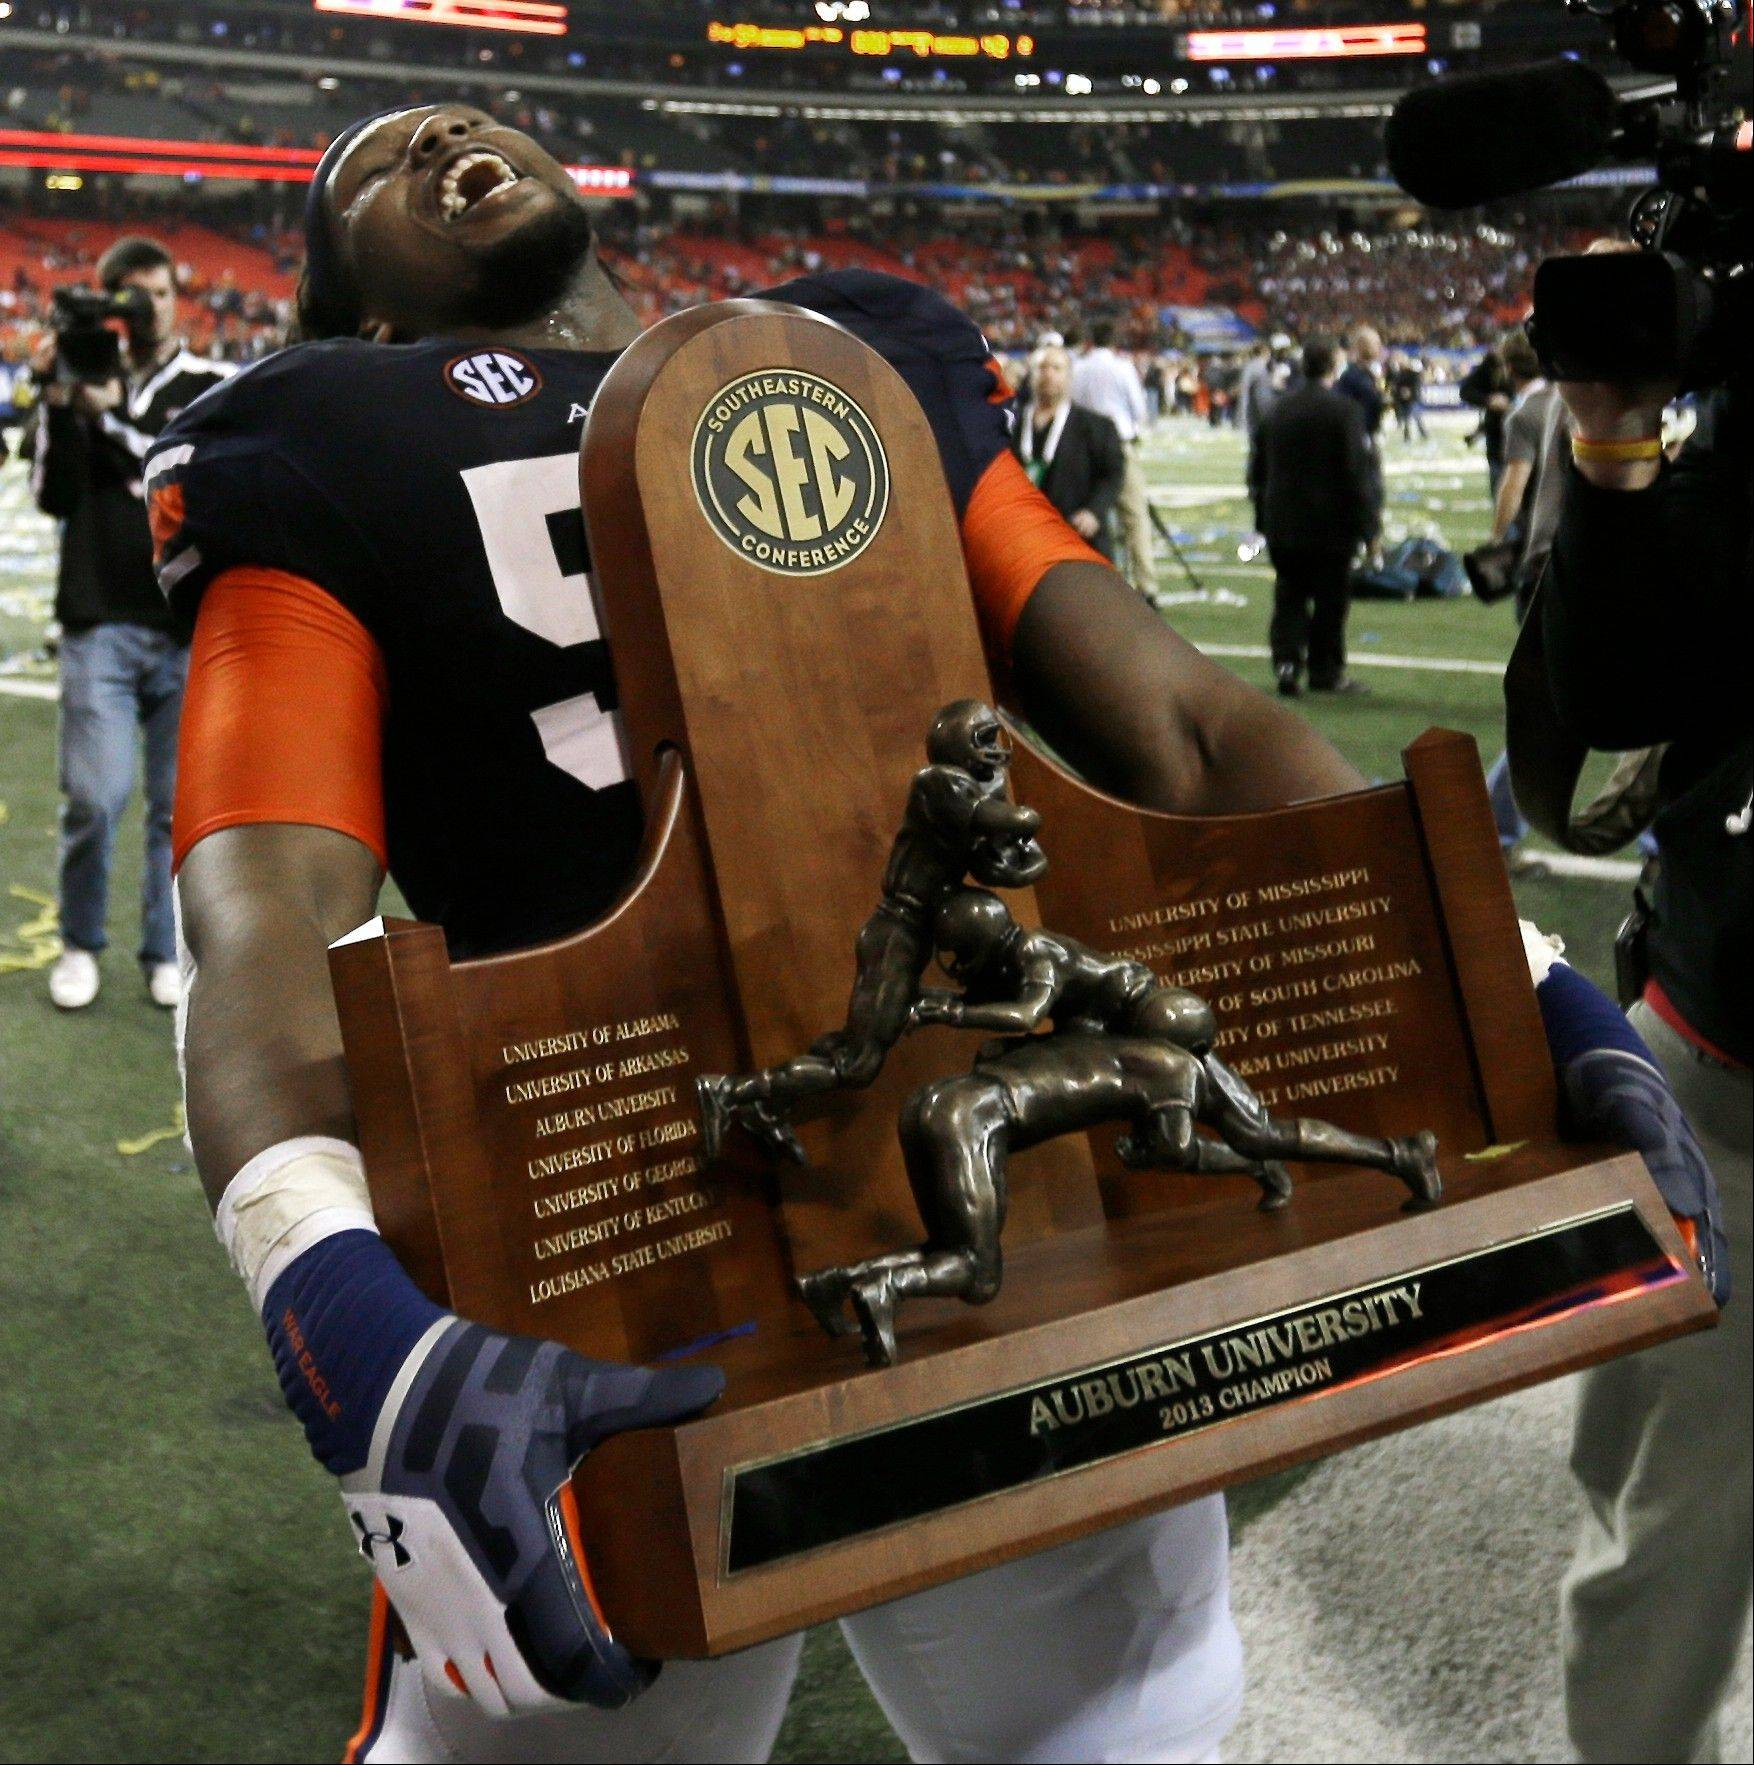 Auburn offensive linesman Avery Young (56) carries the championship trophy after the second half of the Southeastern Conference NCAA football championship game against Missouri, Saturday, Dec. 7, 2013, in Atlanta. Auburn won 59-42.